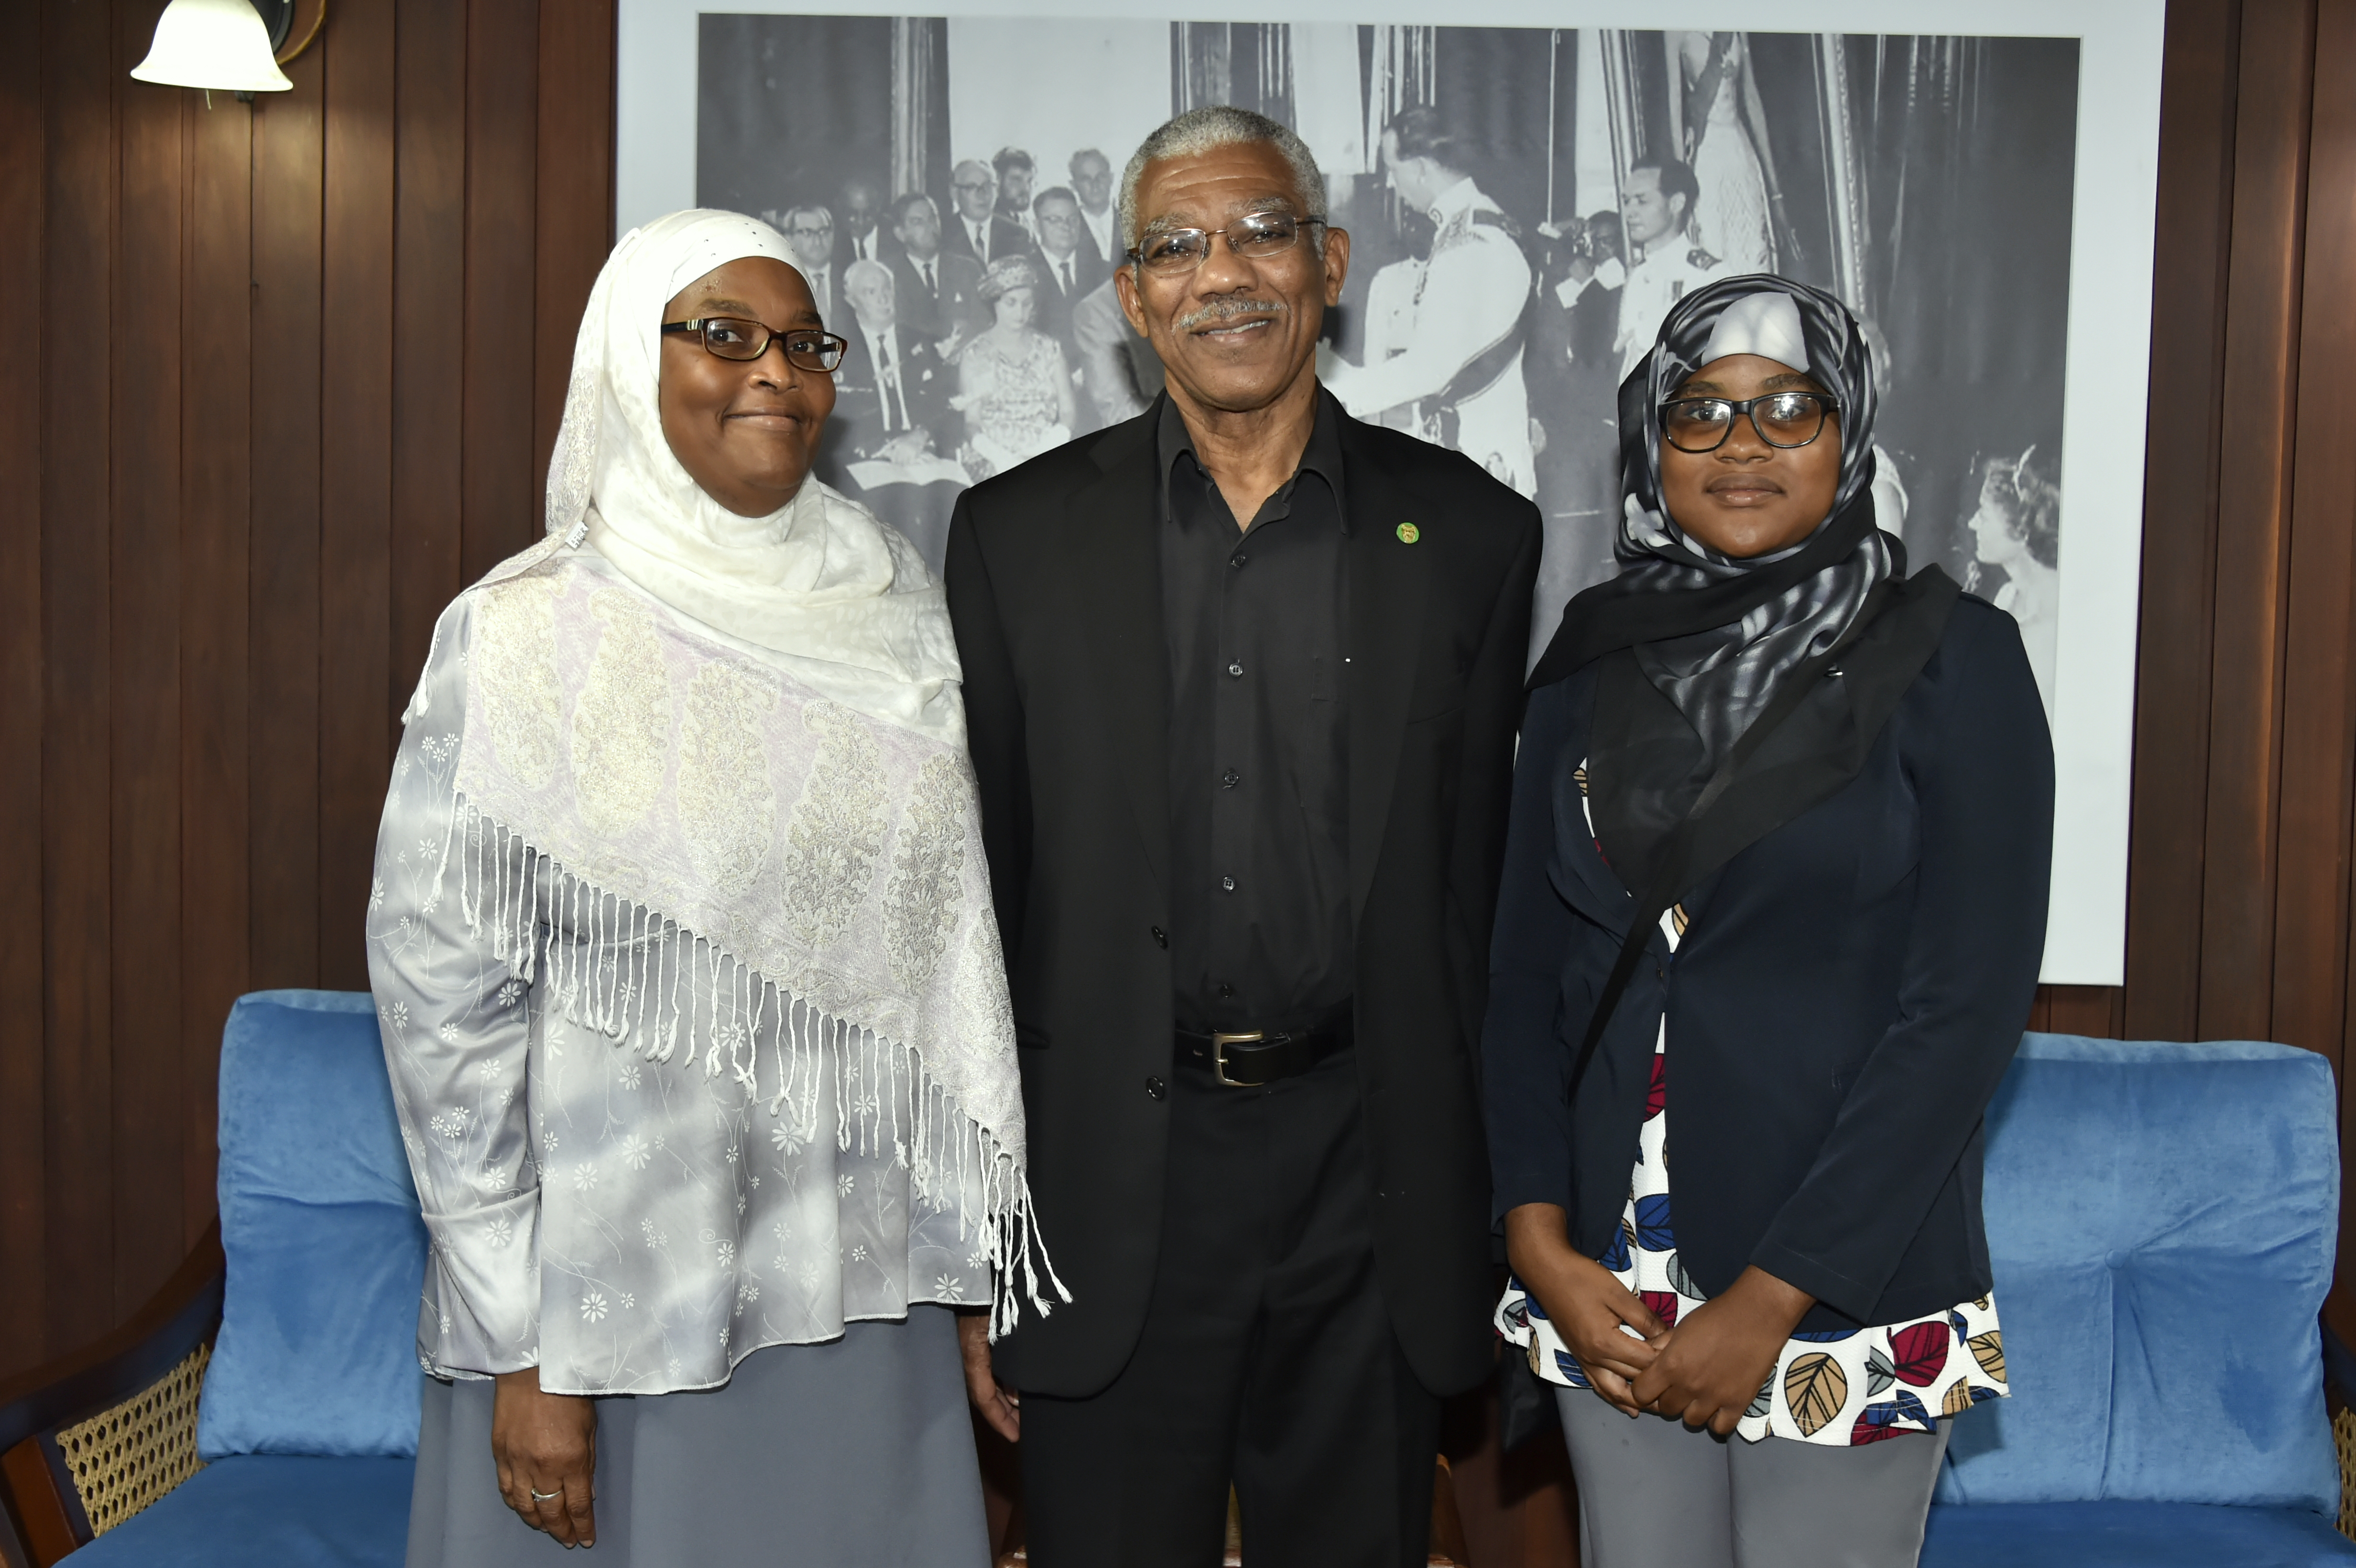 President David Granger flanked by Ms. Fatima Karim and her mother Ms. Khadijah Karim at the Ministry of the Presidency